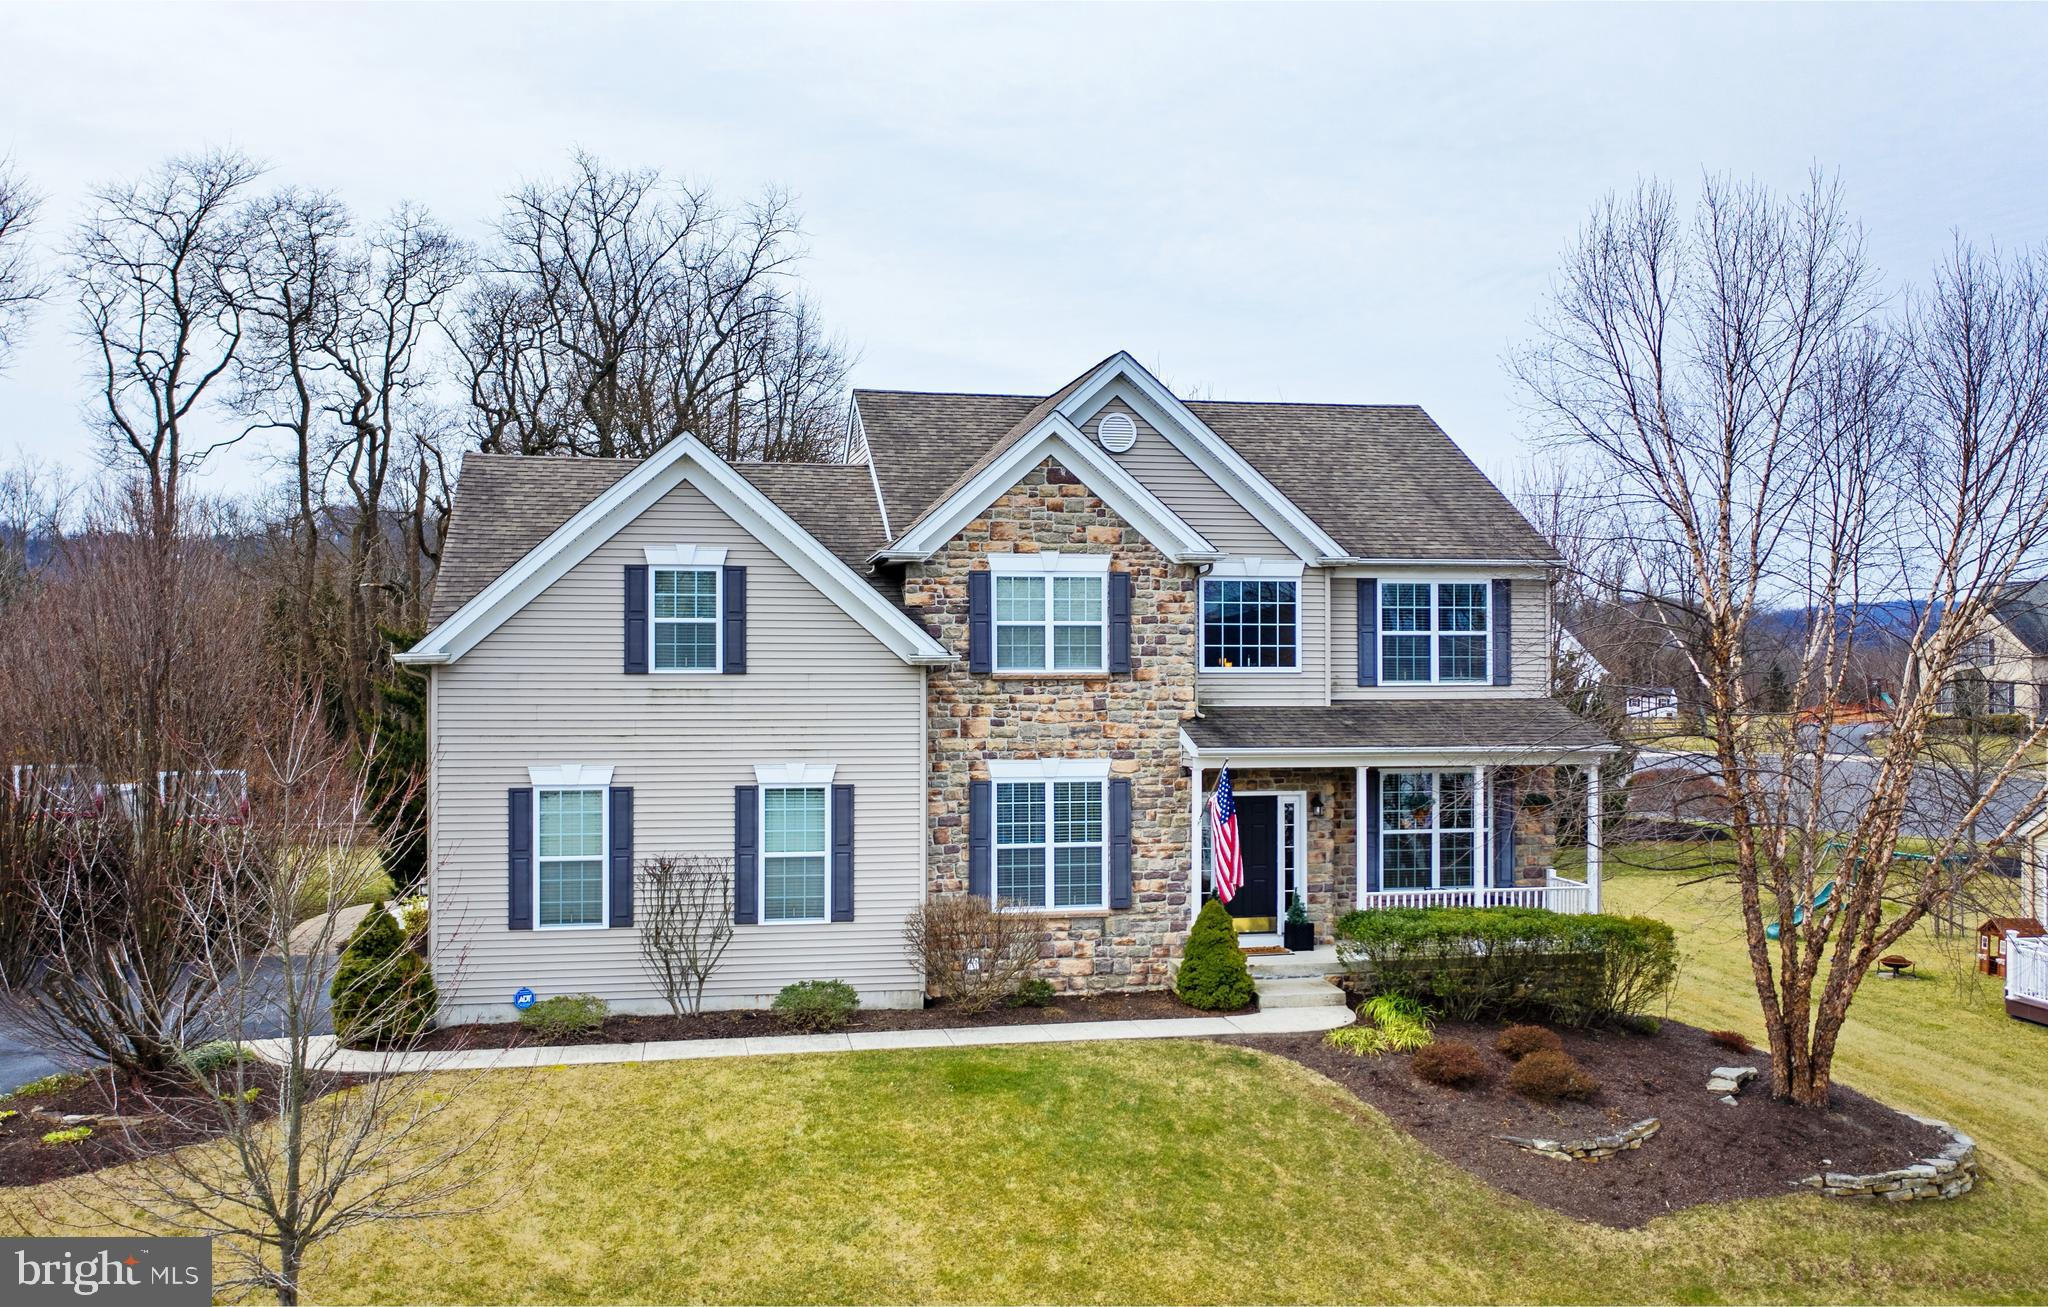 4640 ROLLING RIDGE DRIVE, CENTER VALLEY, PA 18034